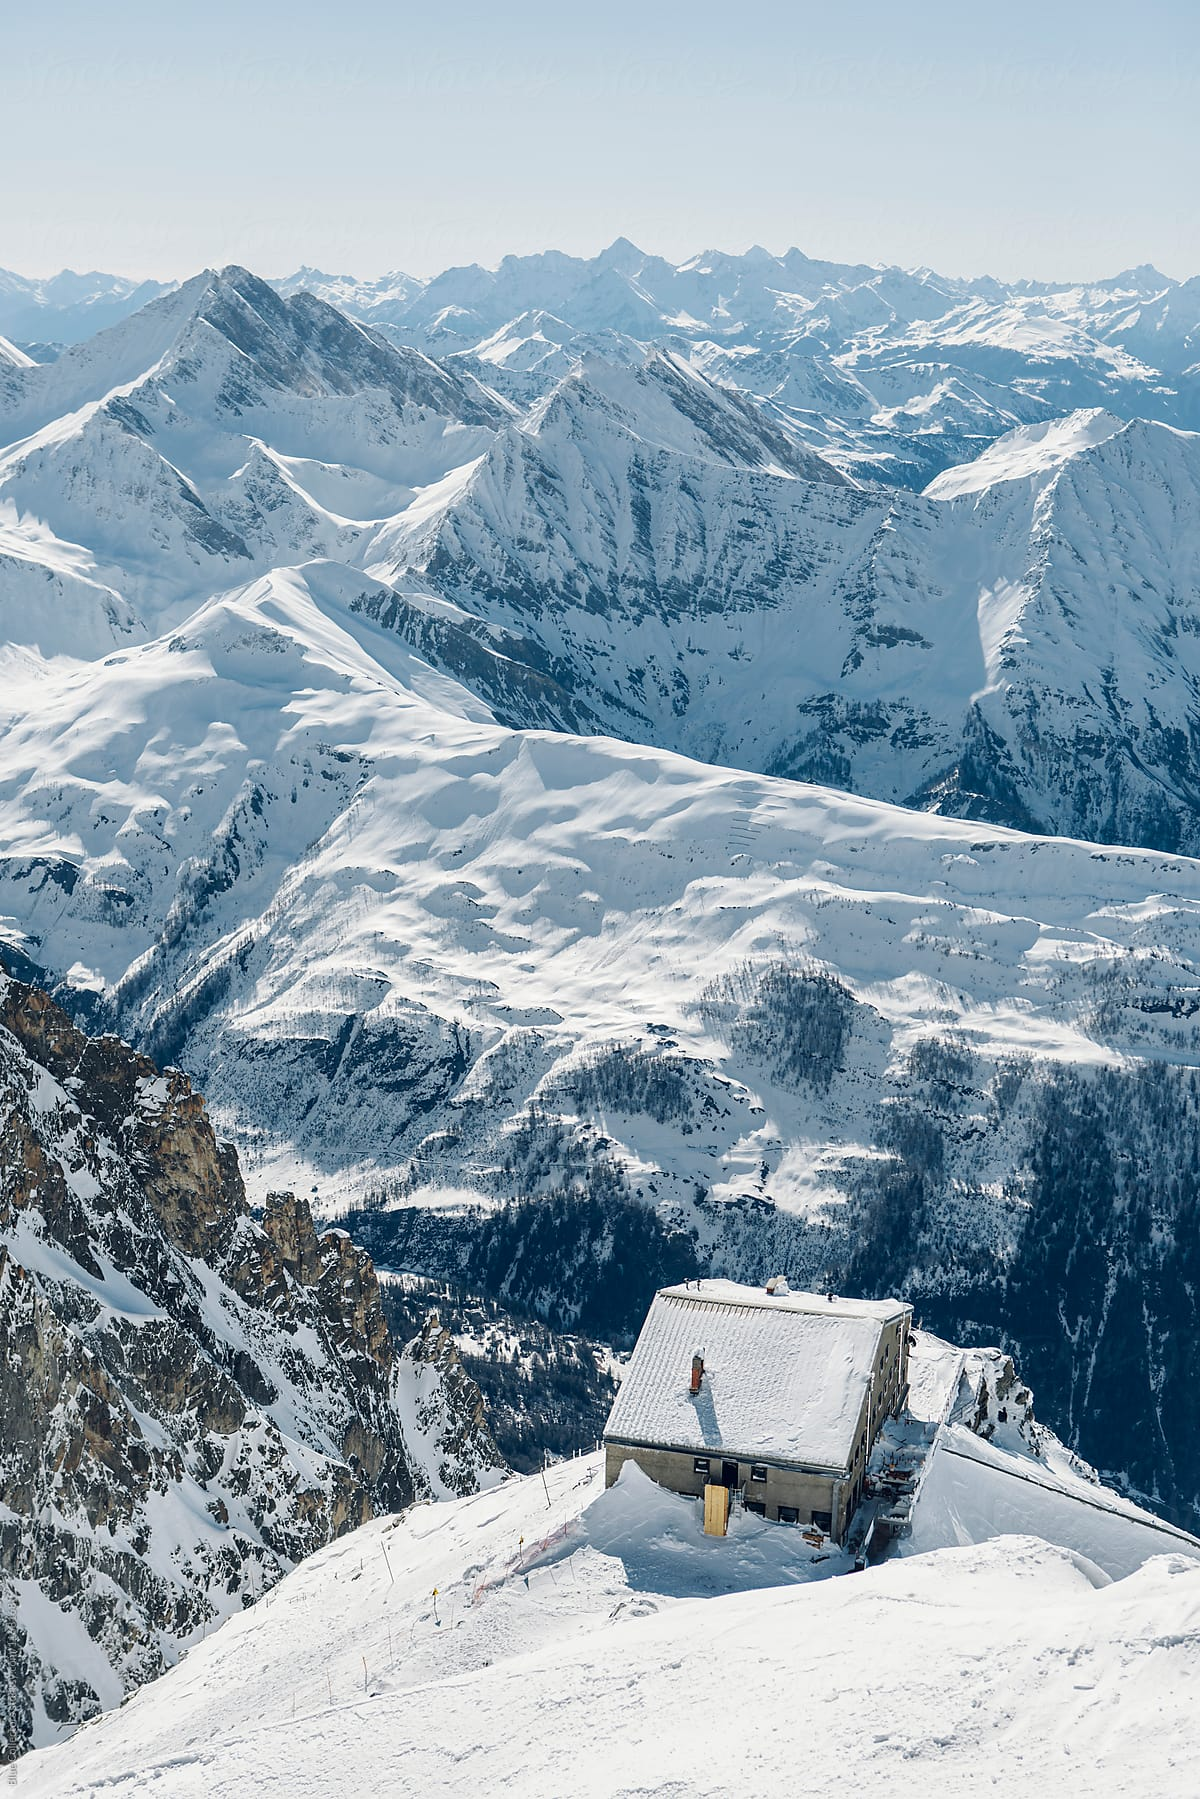 Winter mountain cabin covered in snow in the top of the